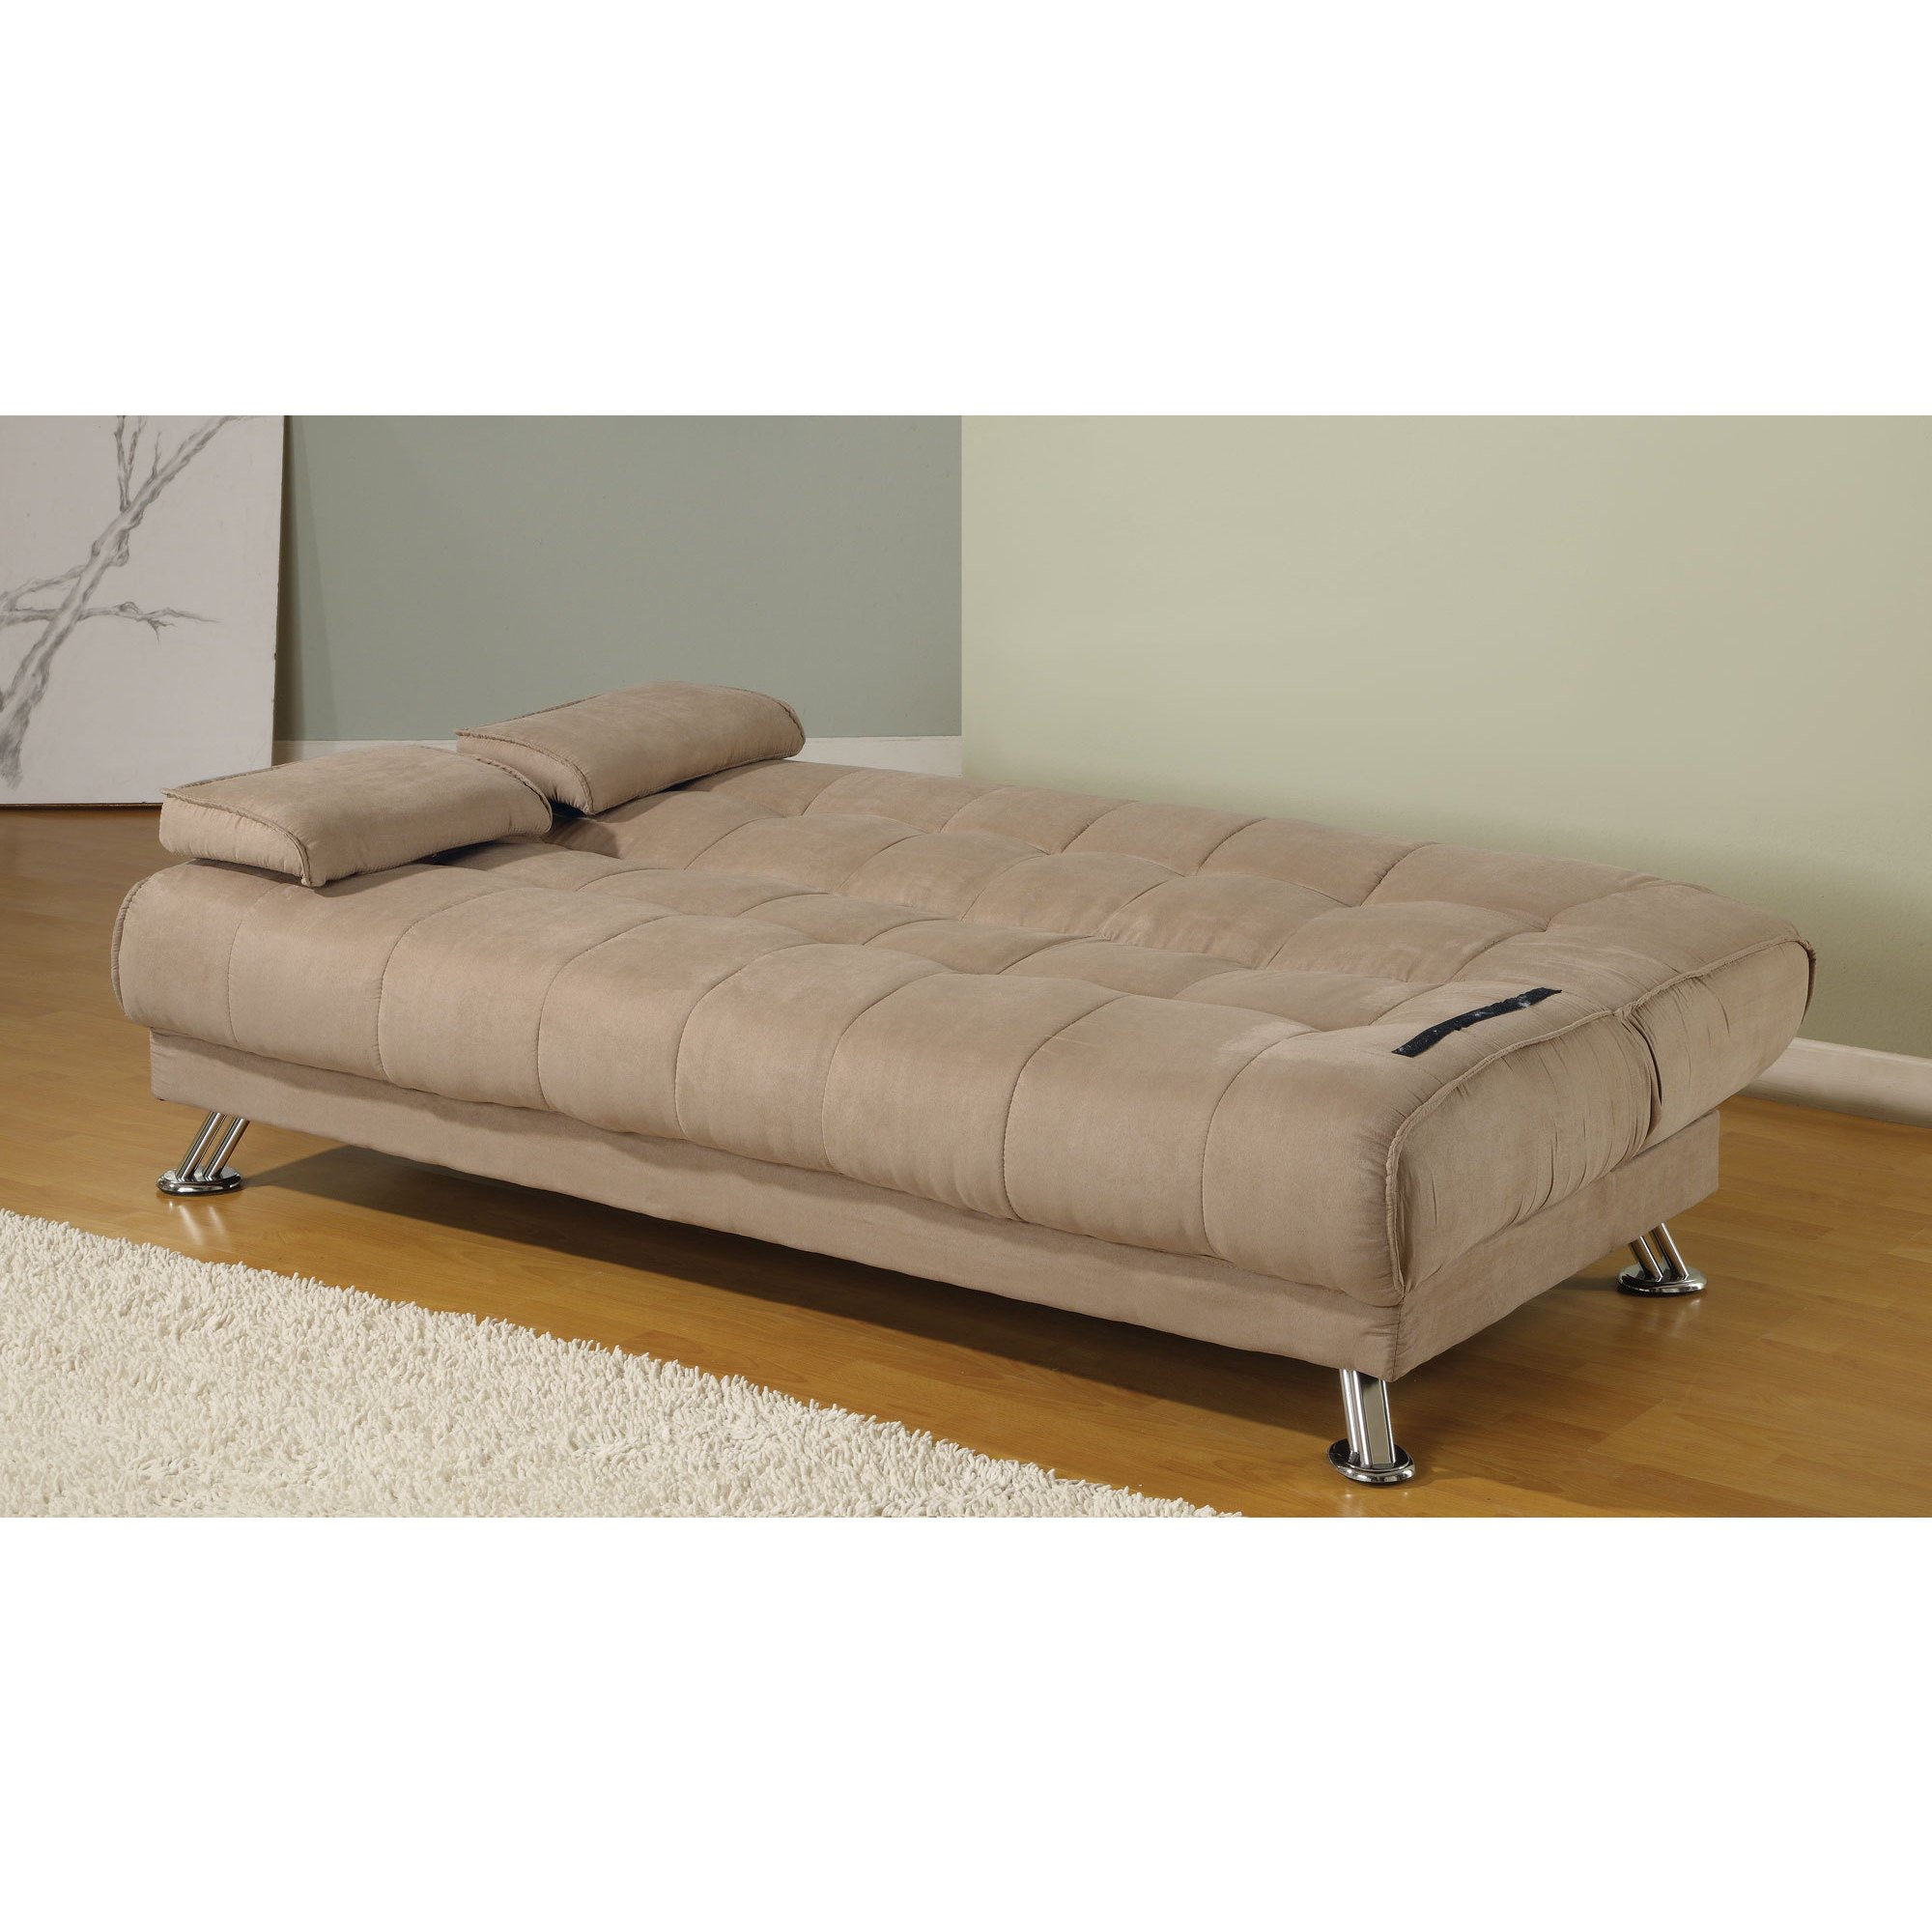 Shop Coaster Company Tan Microfiber Sofa Bed - On Sale - Free Shipping  Today - Overstock - 12189298